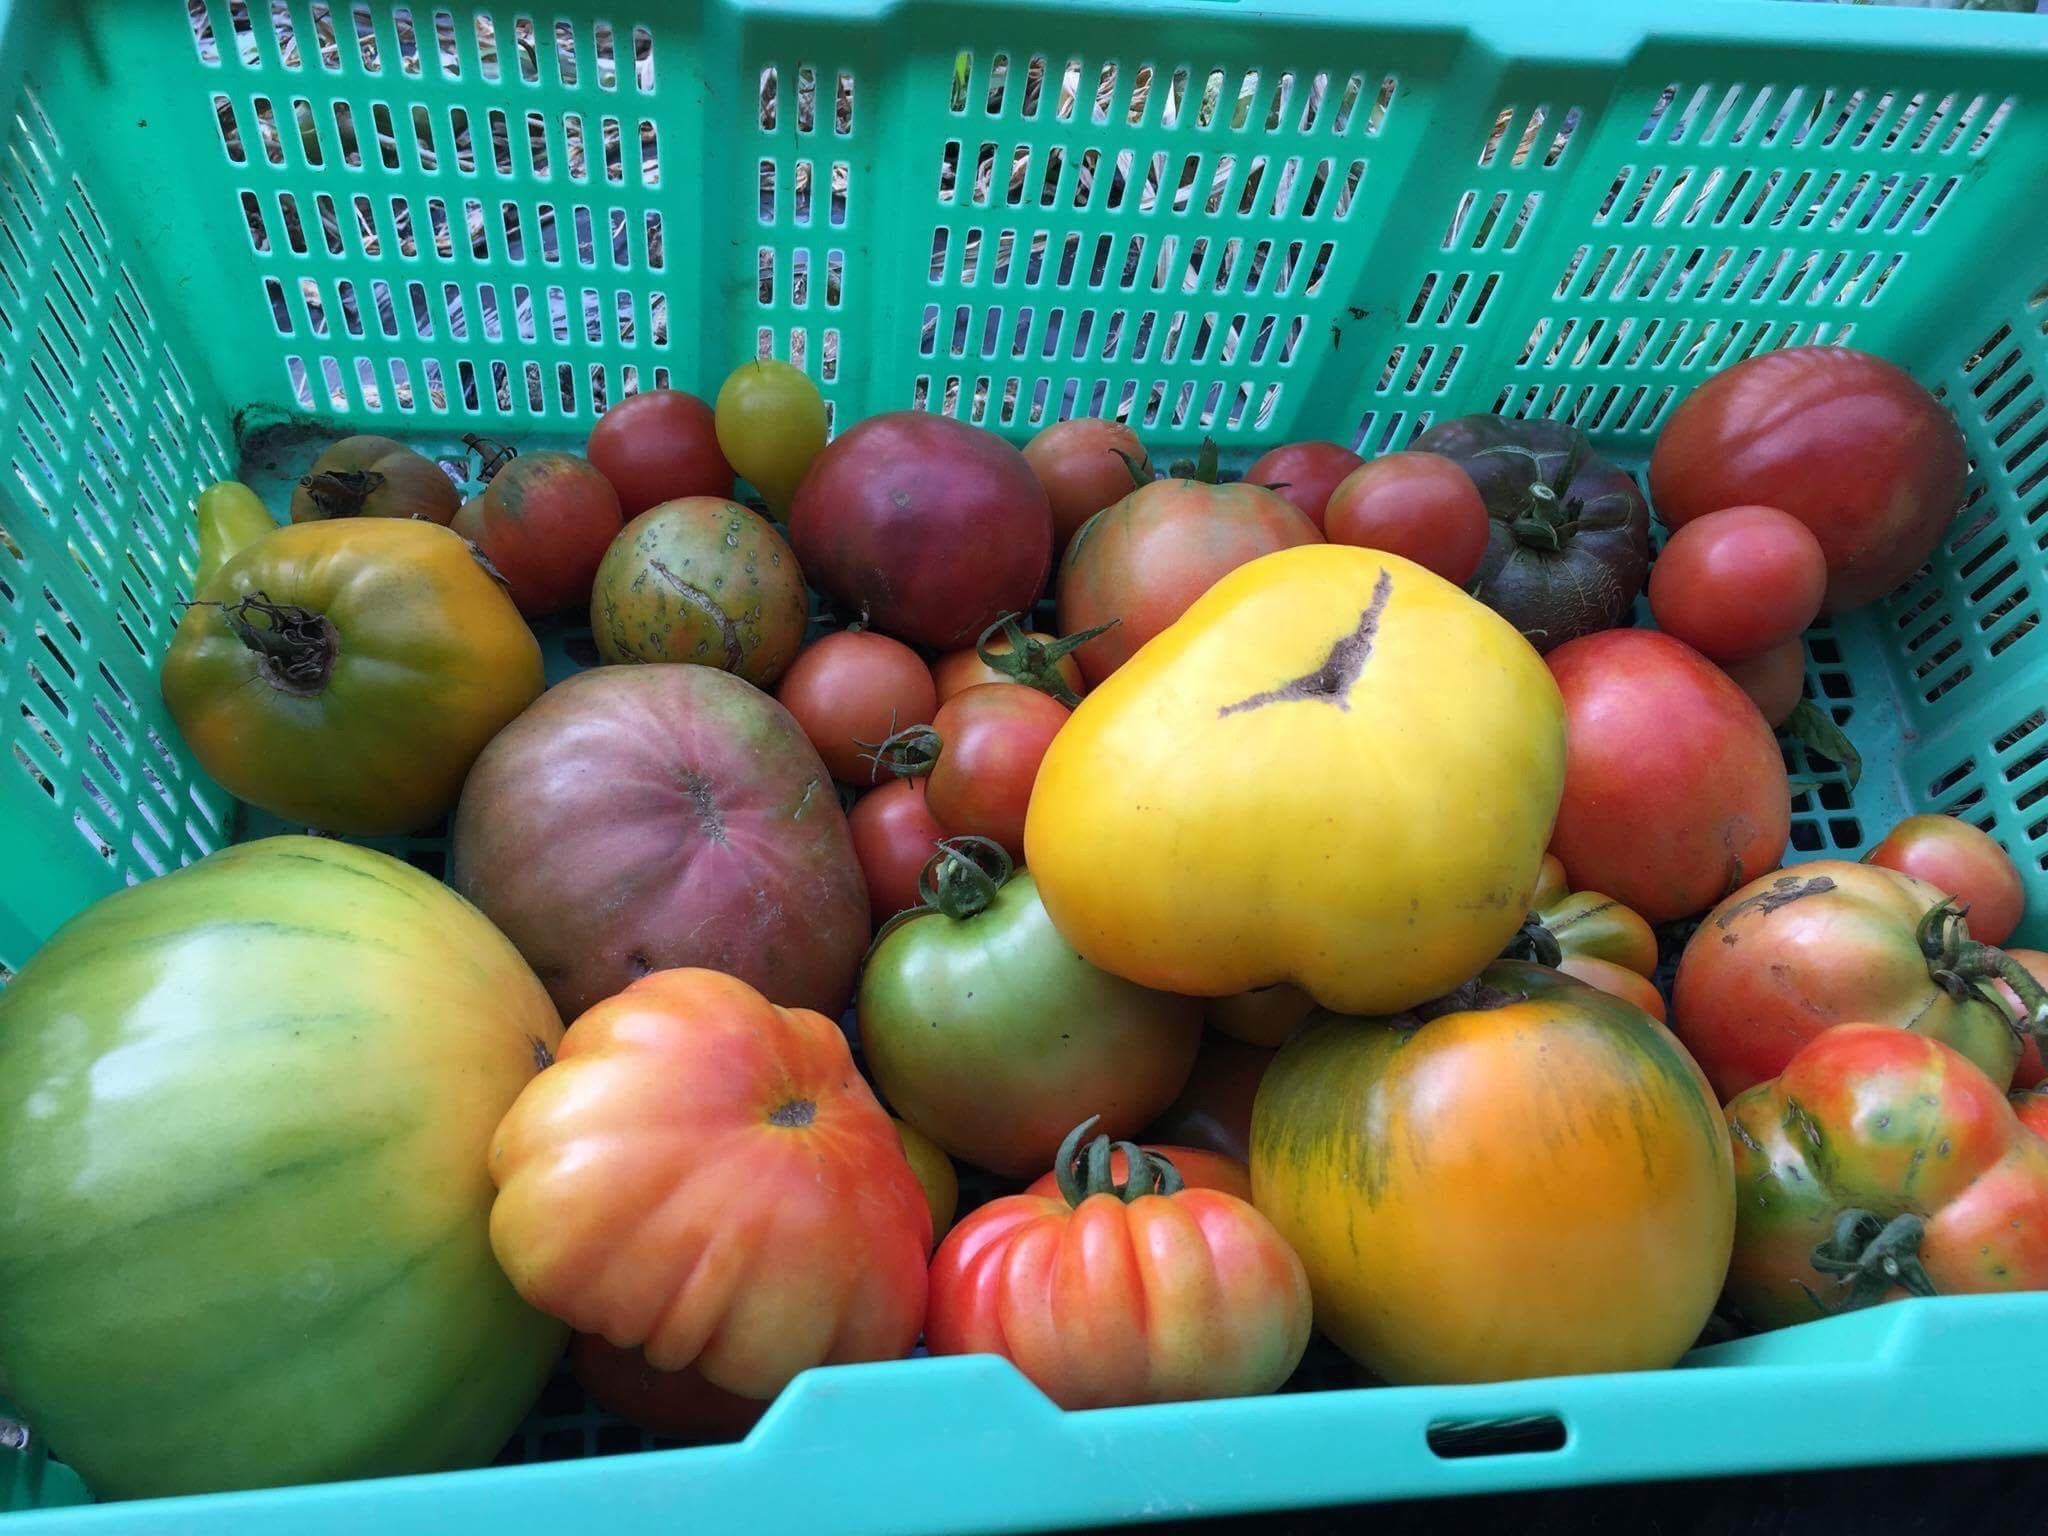 Roughly 12 of our 21 varieties of heirloom tomatoes featured here. We'll continue to plant our most successful varieties in 2018.